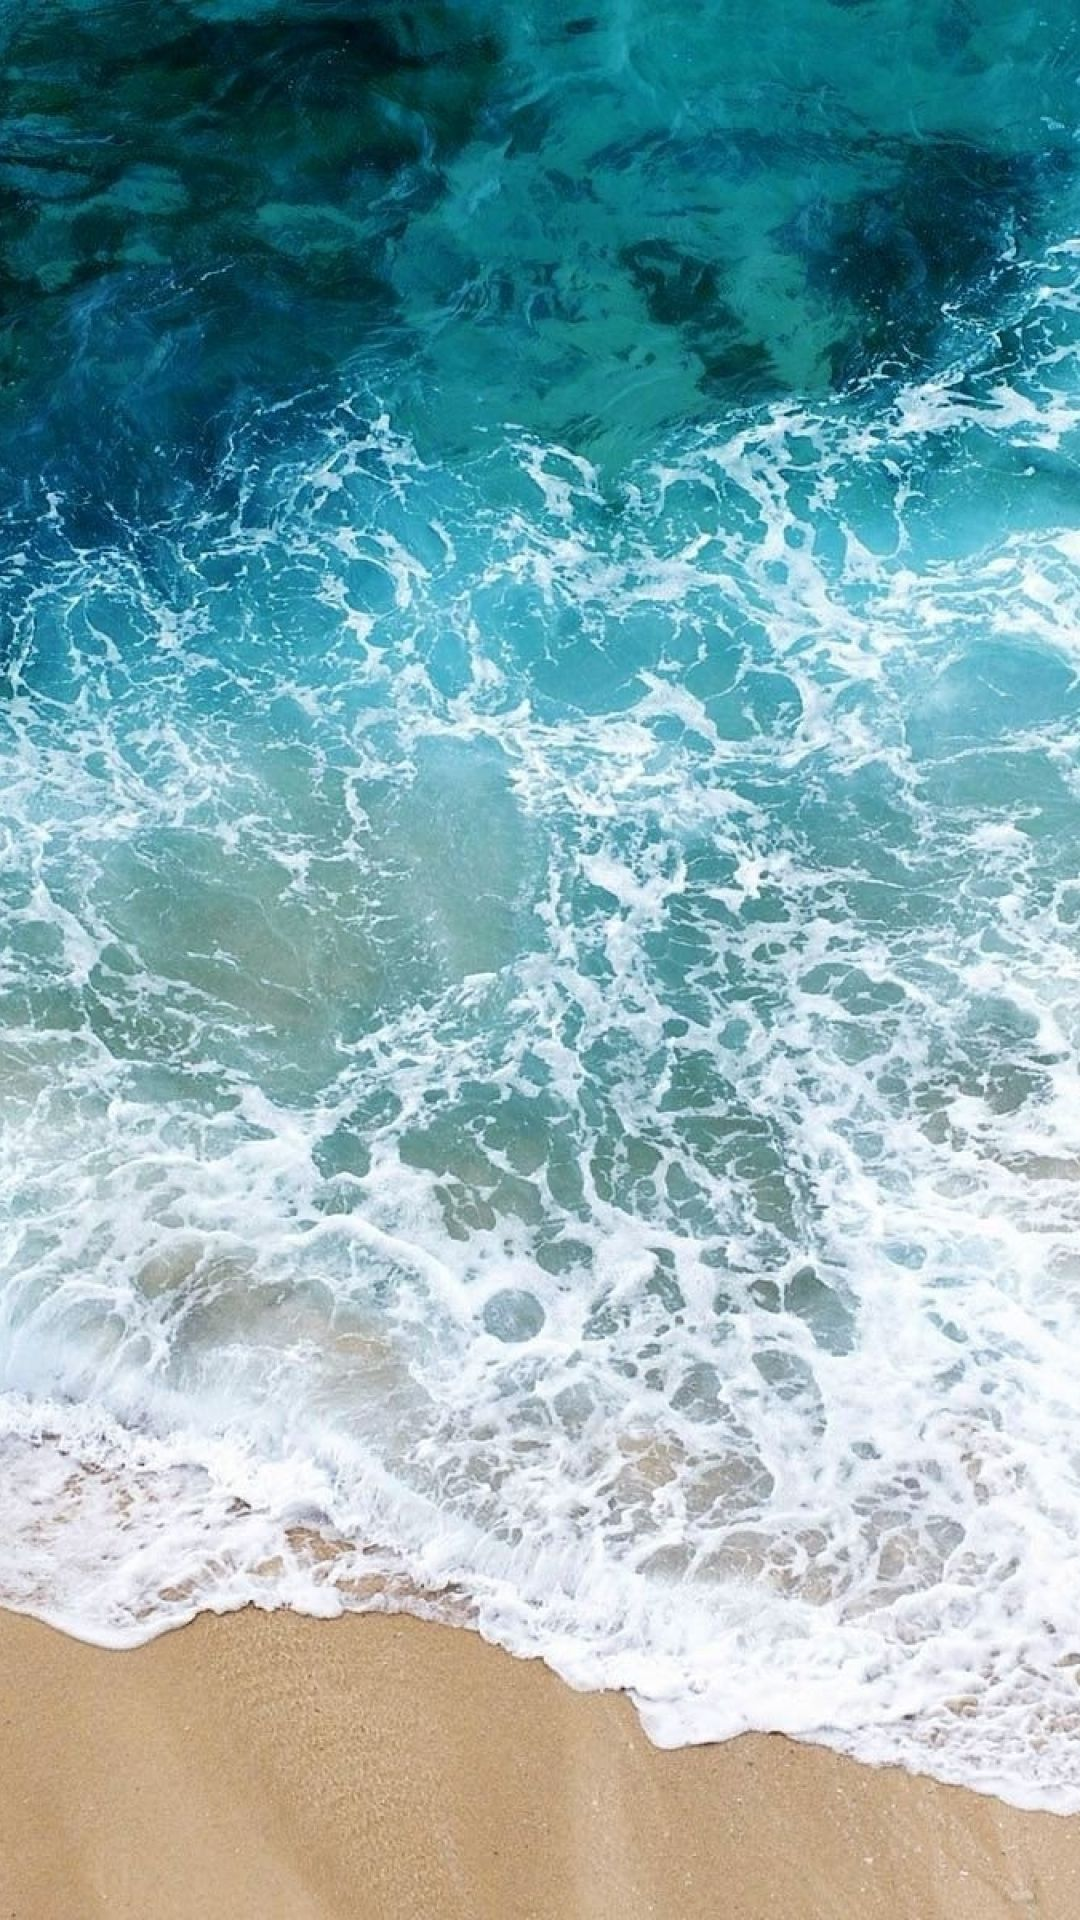 1080x1920 Wallpaper beach, sea, sand, water, transparent